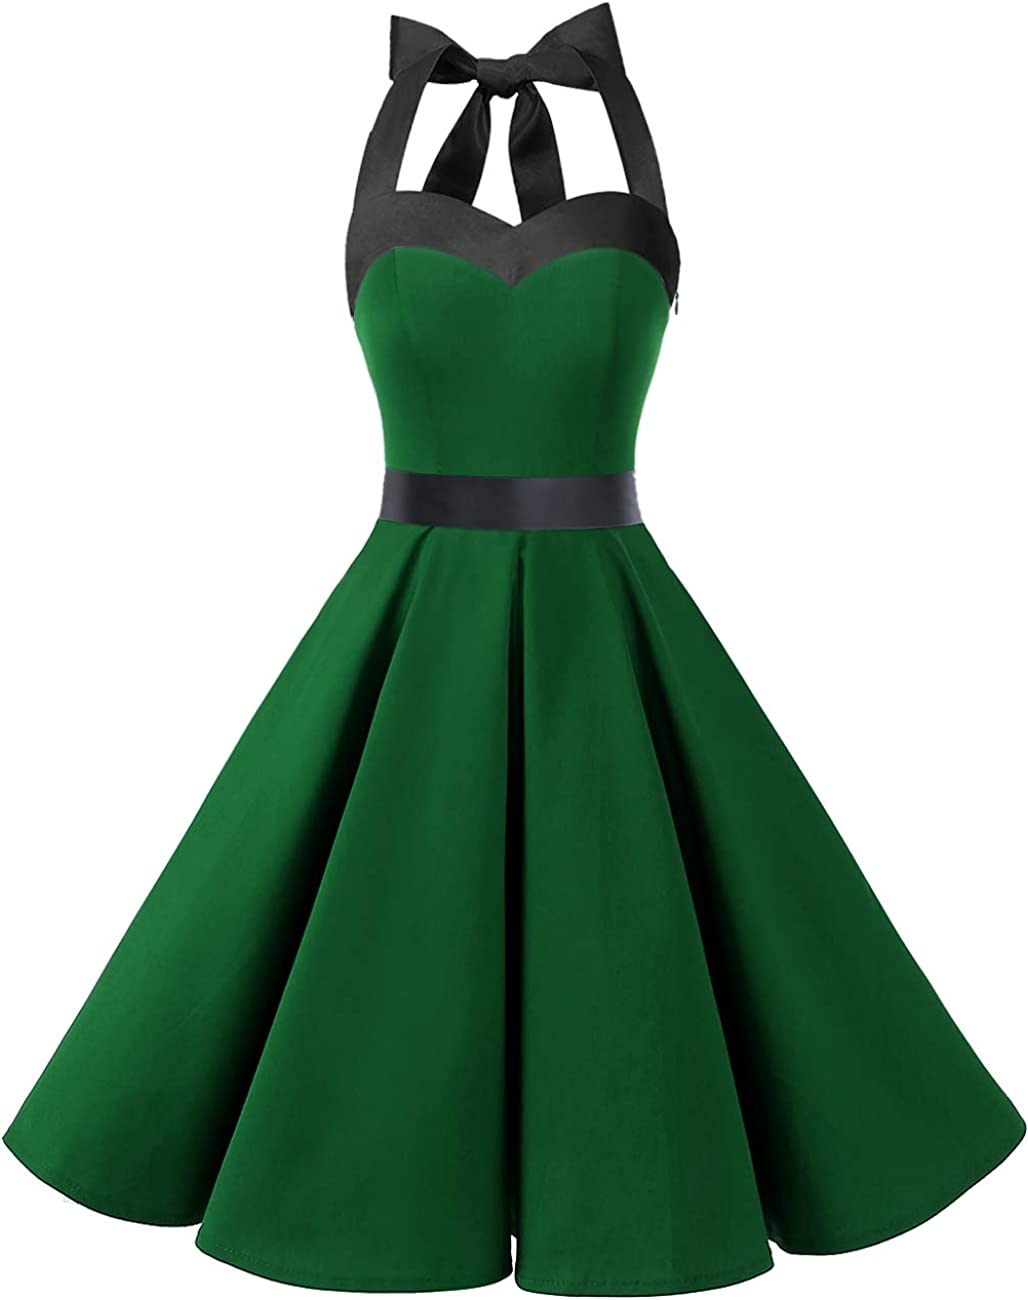 TALLA XXL. Dresstells® Halter 50s Rockabilly Polka Dots Audrey Dress Retro Cocktail Dress Green Black XXL